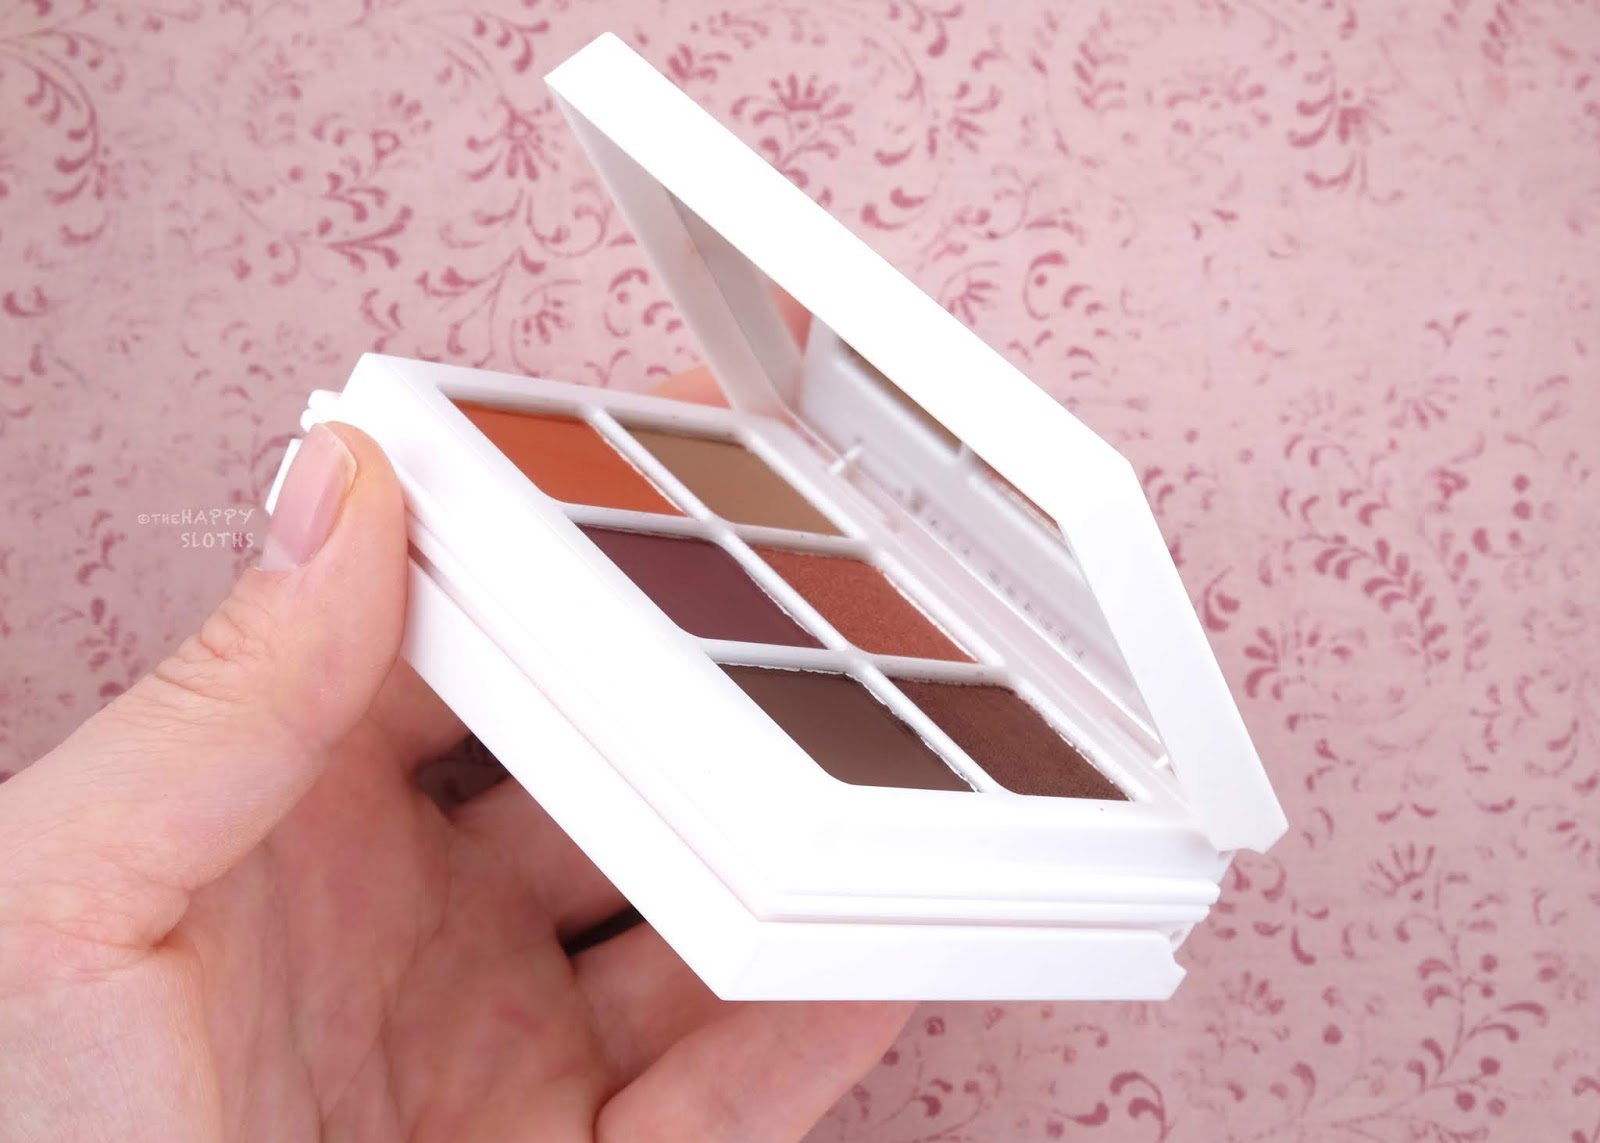 Fenty Beauty | Snap Shadows Mix & Match Eyeshadow Palette: Review and Swatches